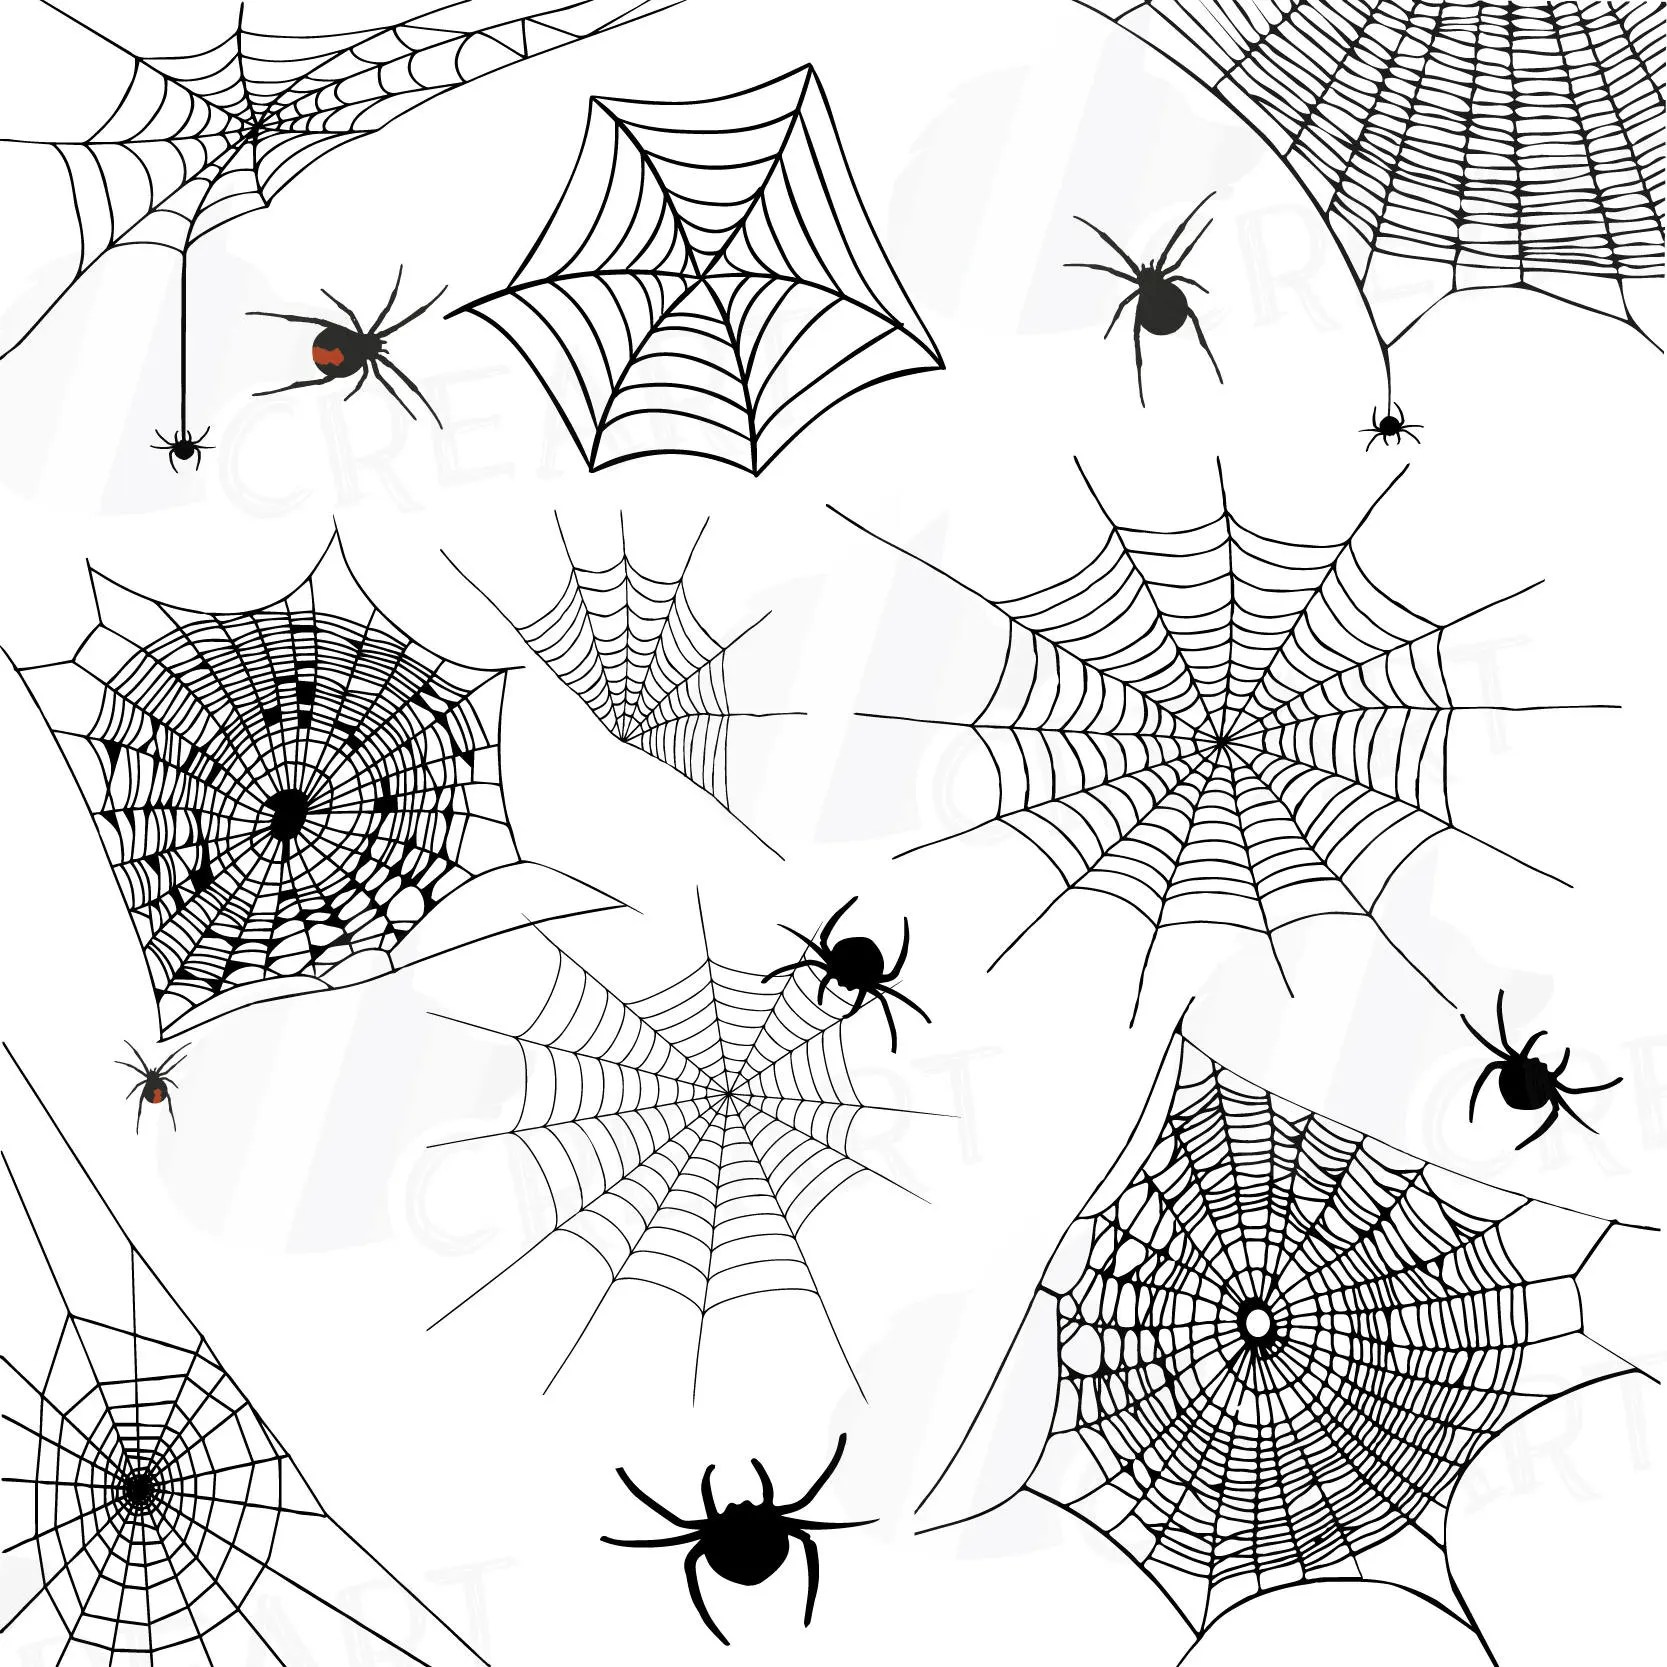 Spiders and Spider webs silhouettes clip art pack